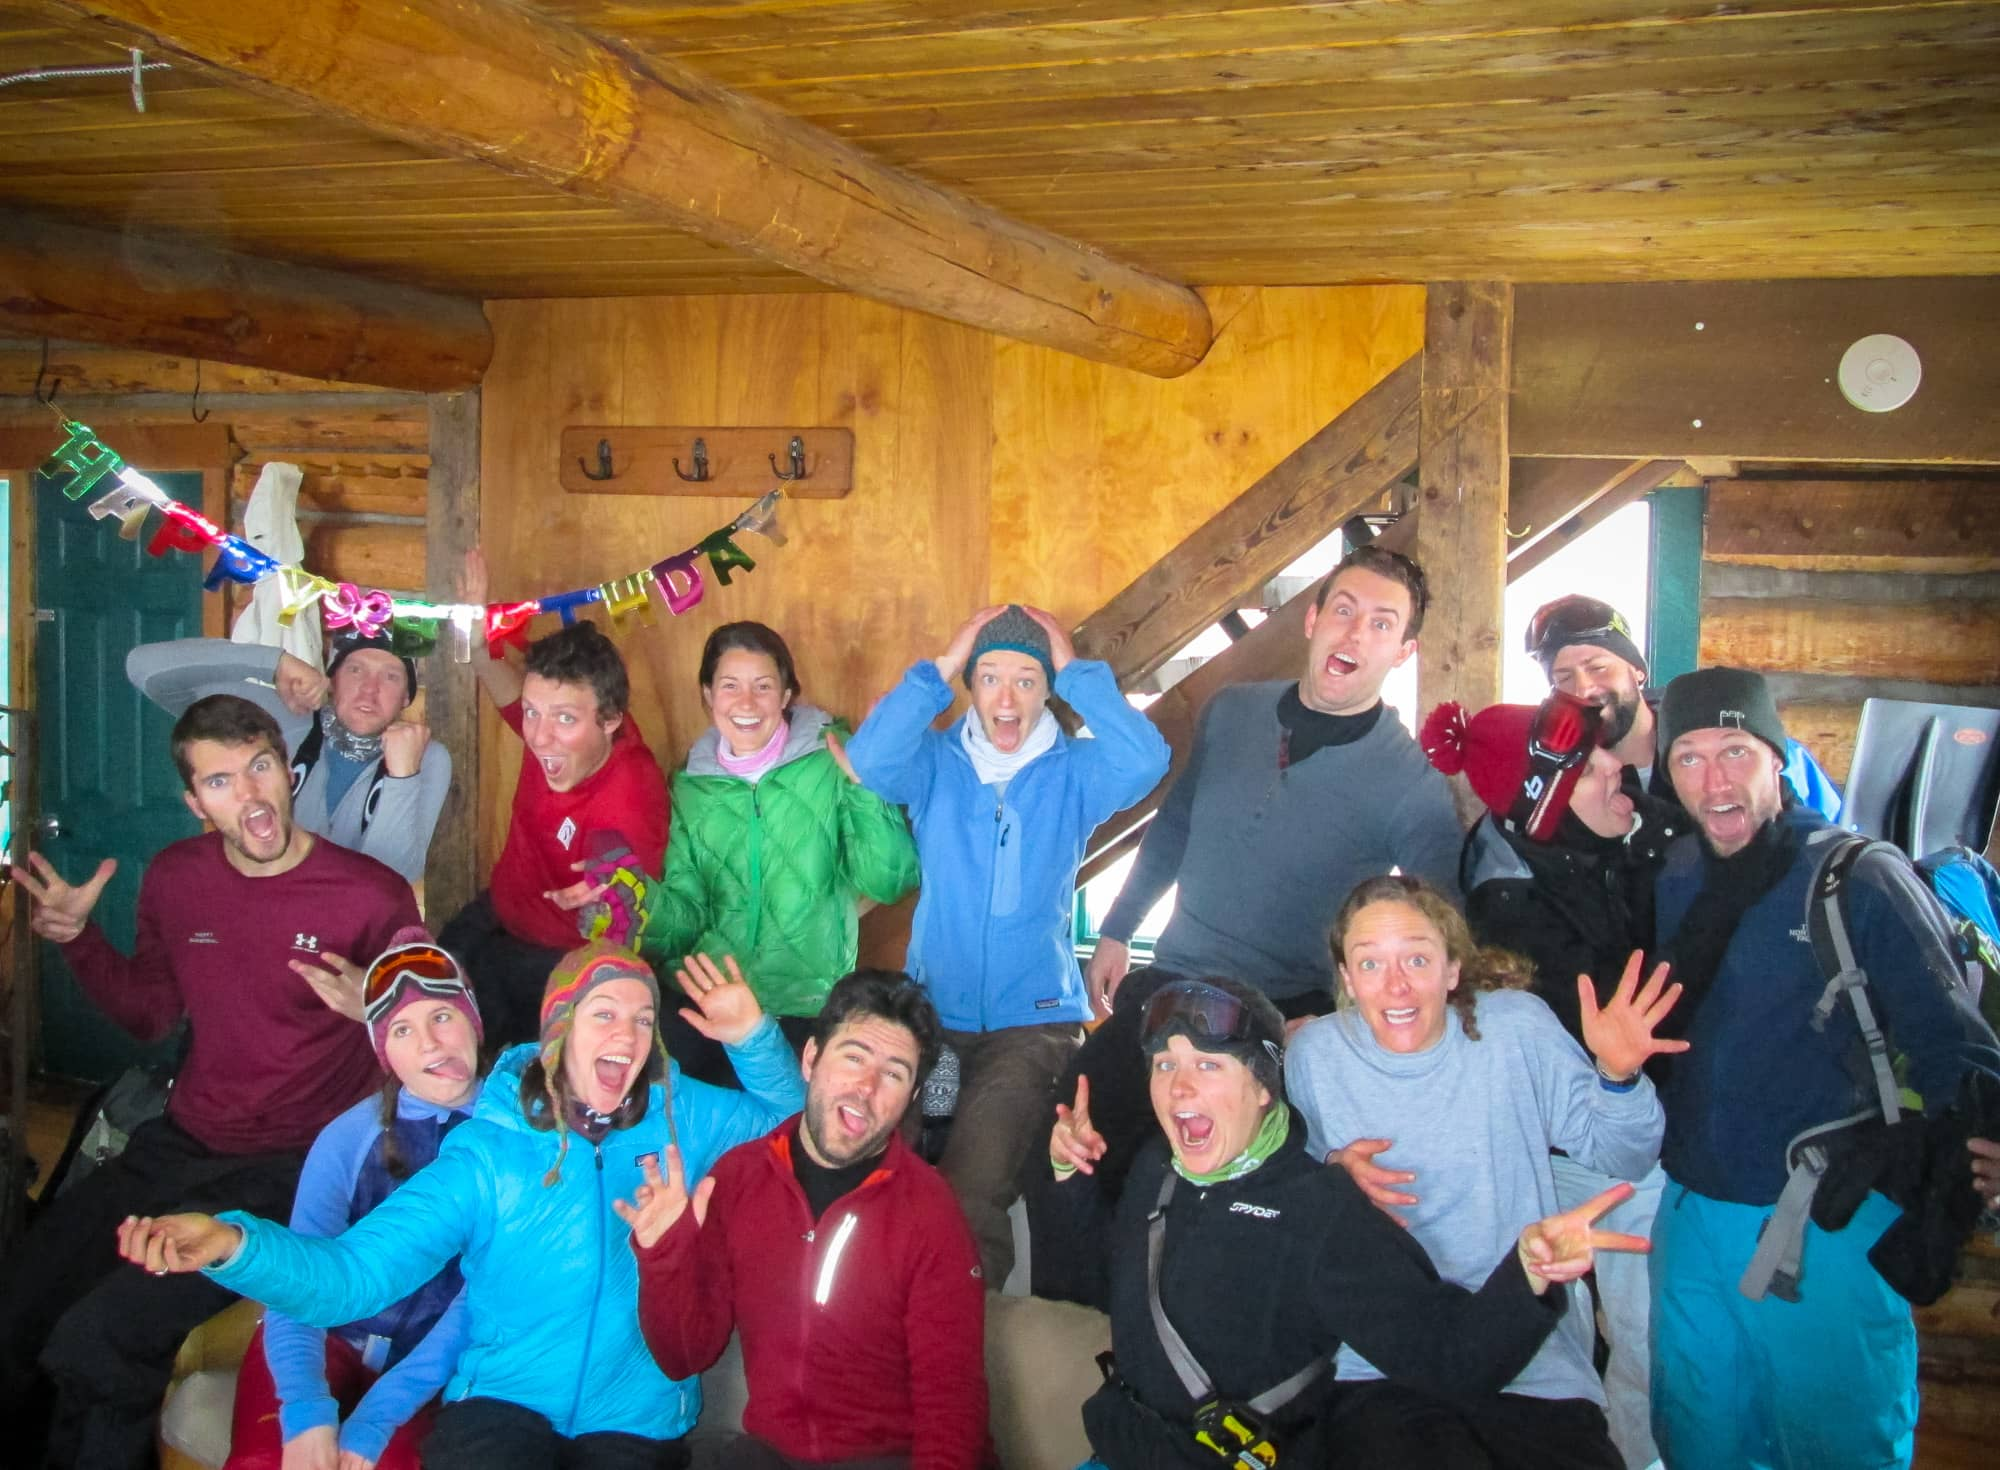 Reasons to take a backcountry hut trip - #15 - Spending quality time with friends